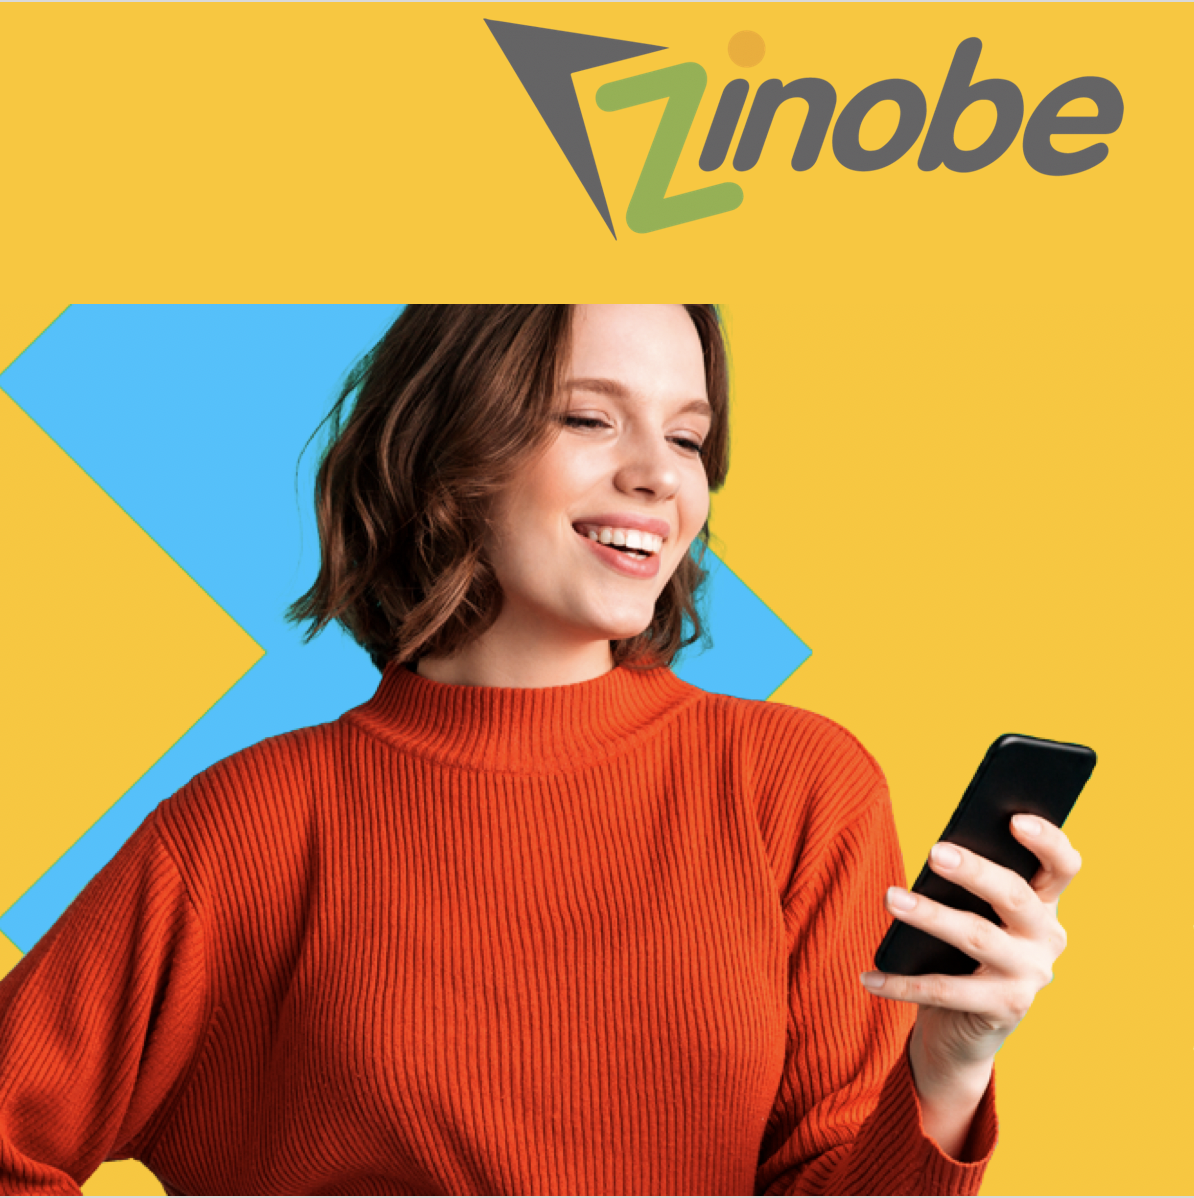 Zinobe   Fintech that offers credit solutions in Latam   We co-invested with QED Investors